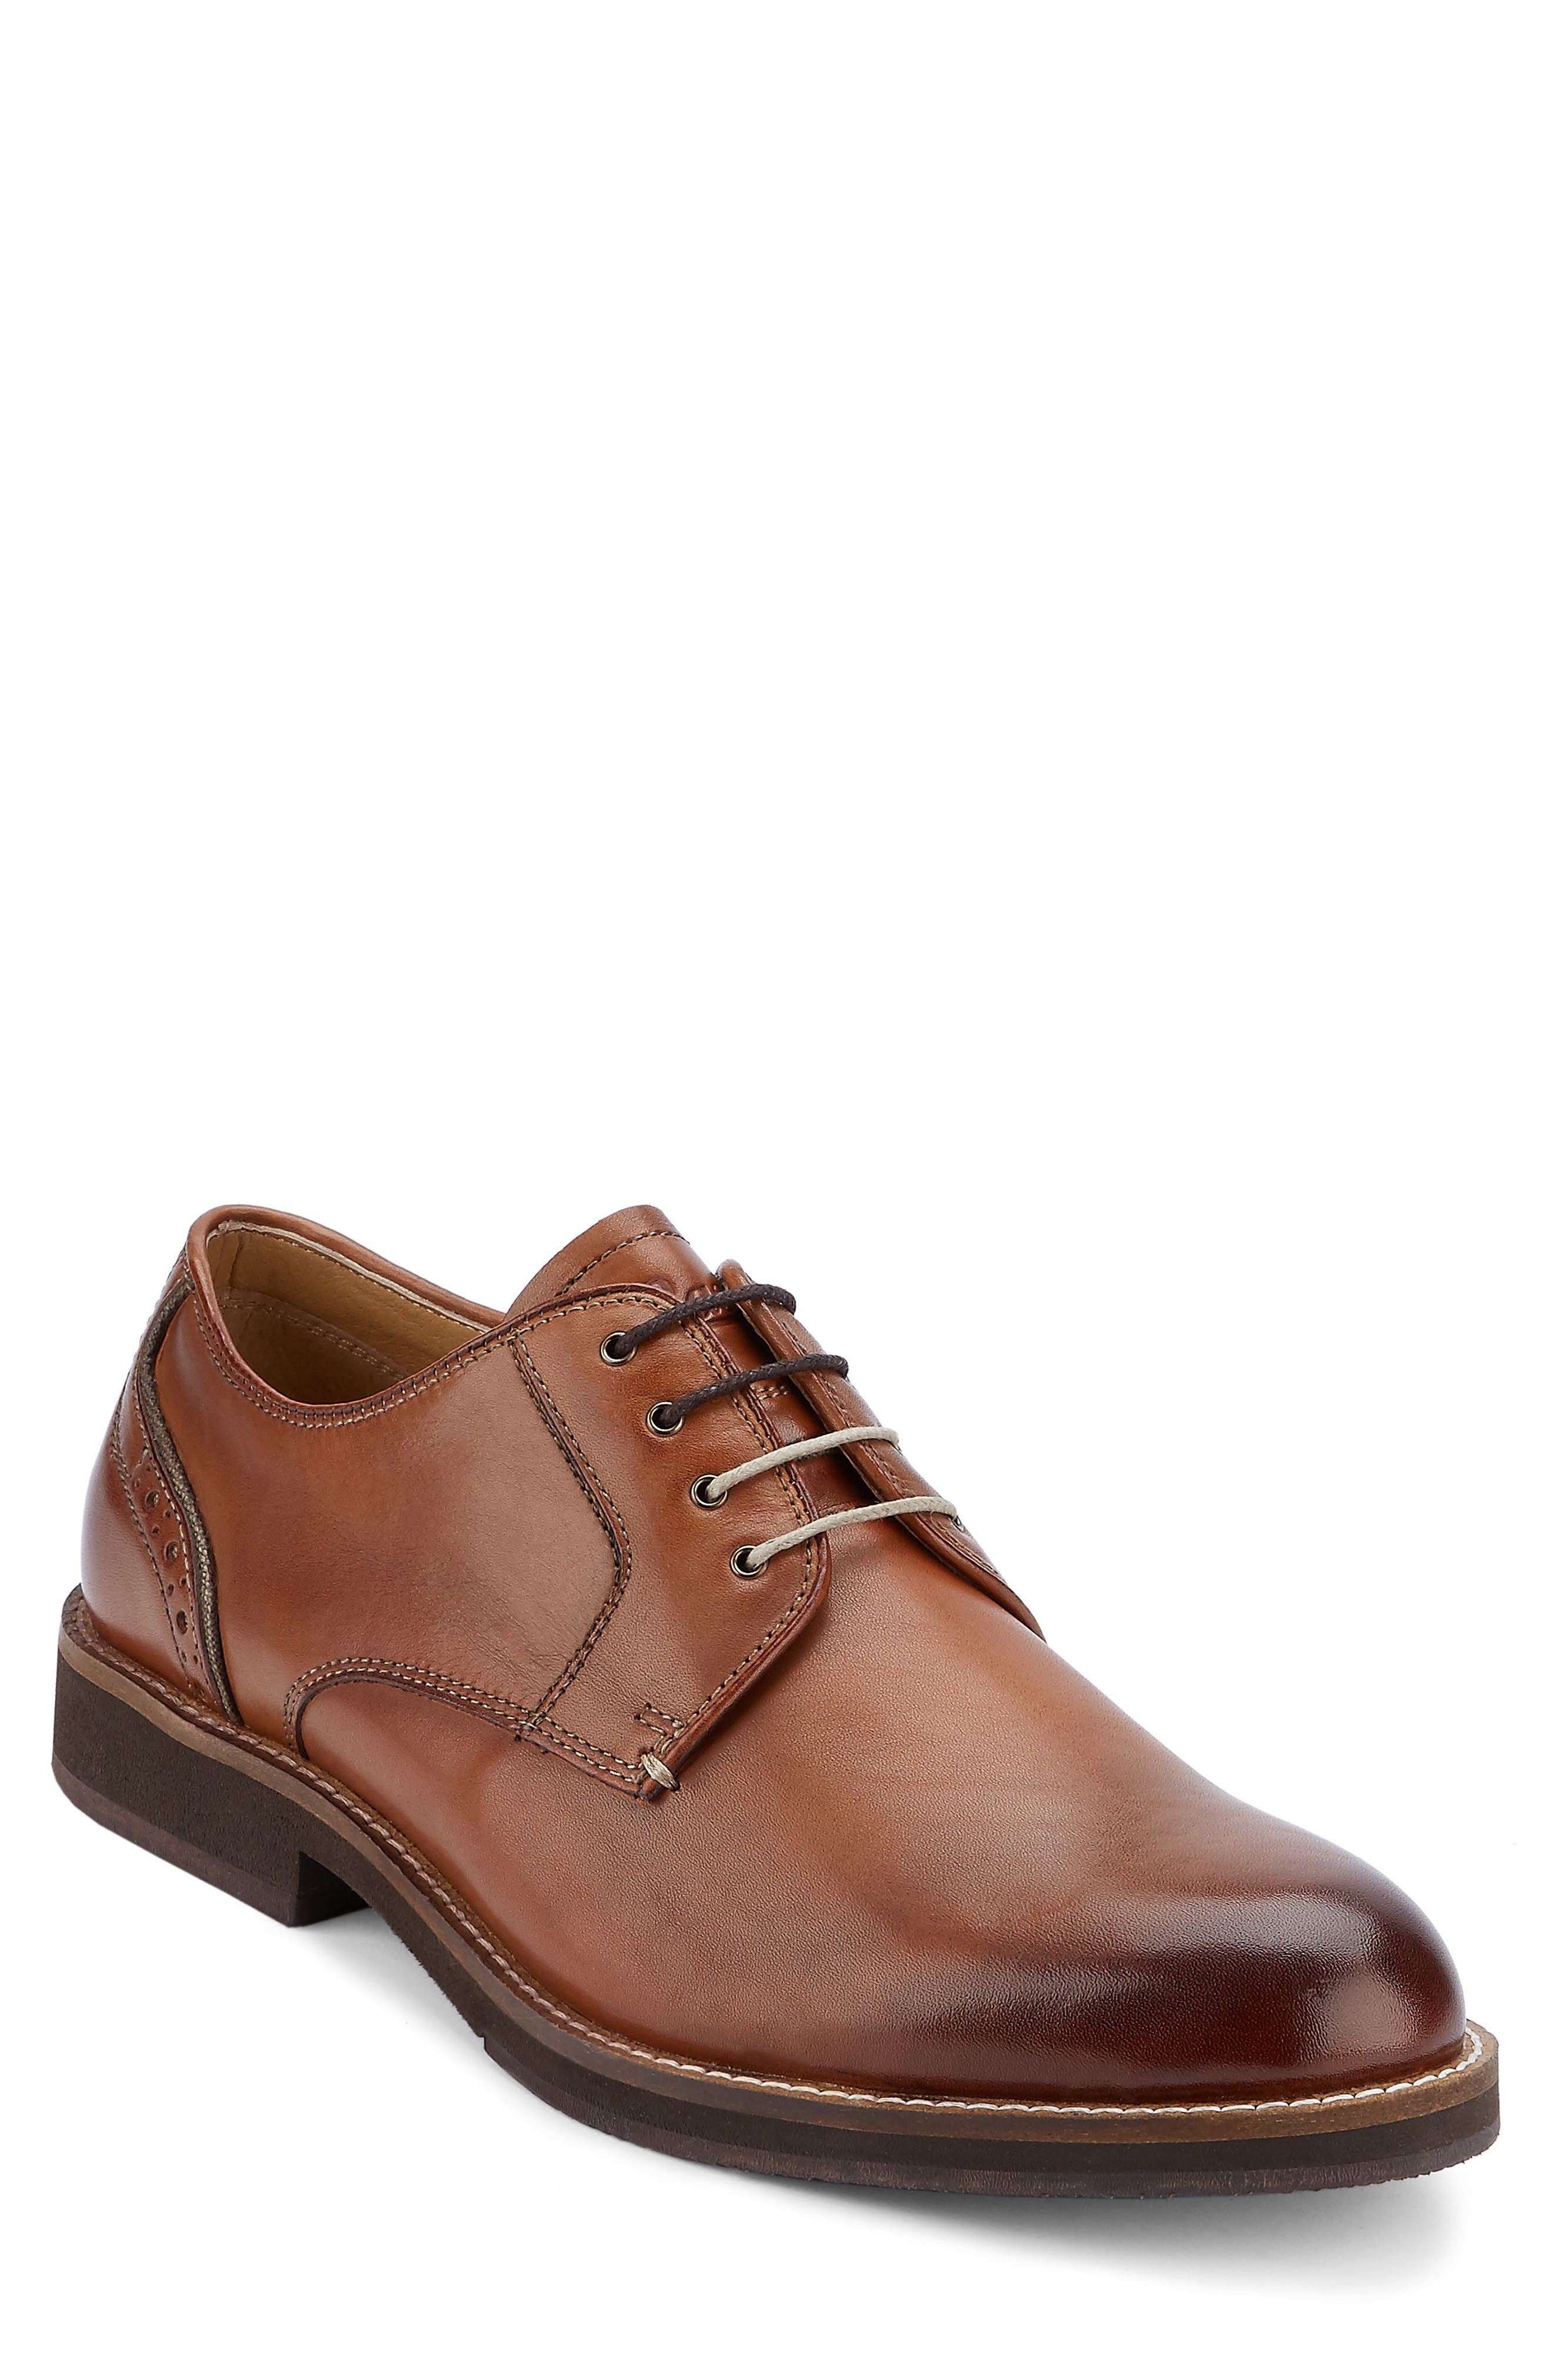 G.H Bass & Co. Niles Plain Toe Derby (Men)